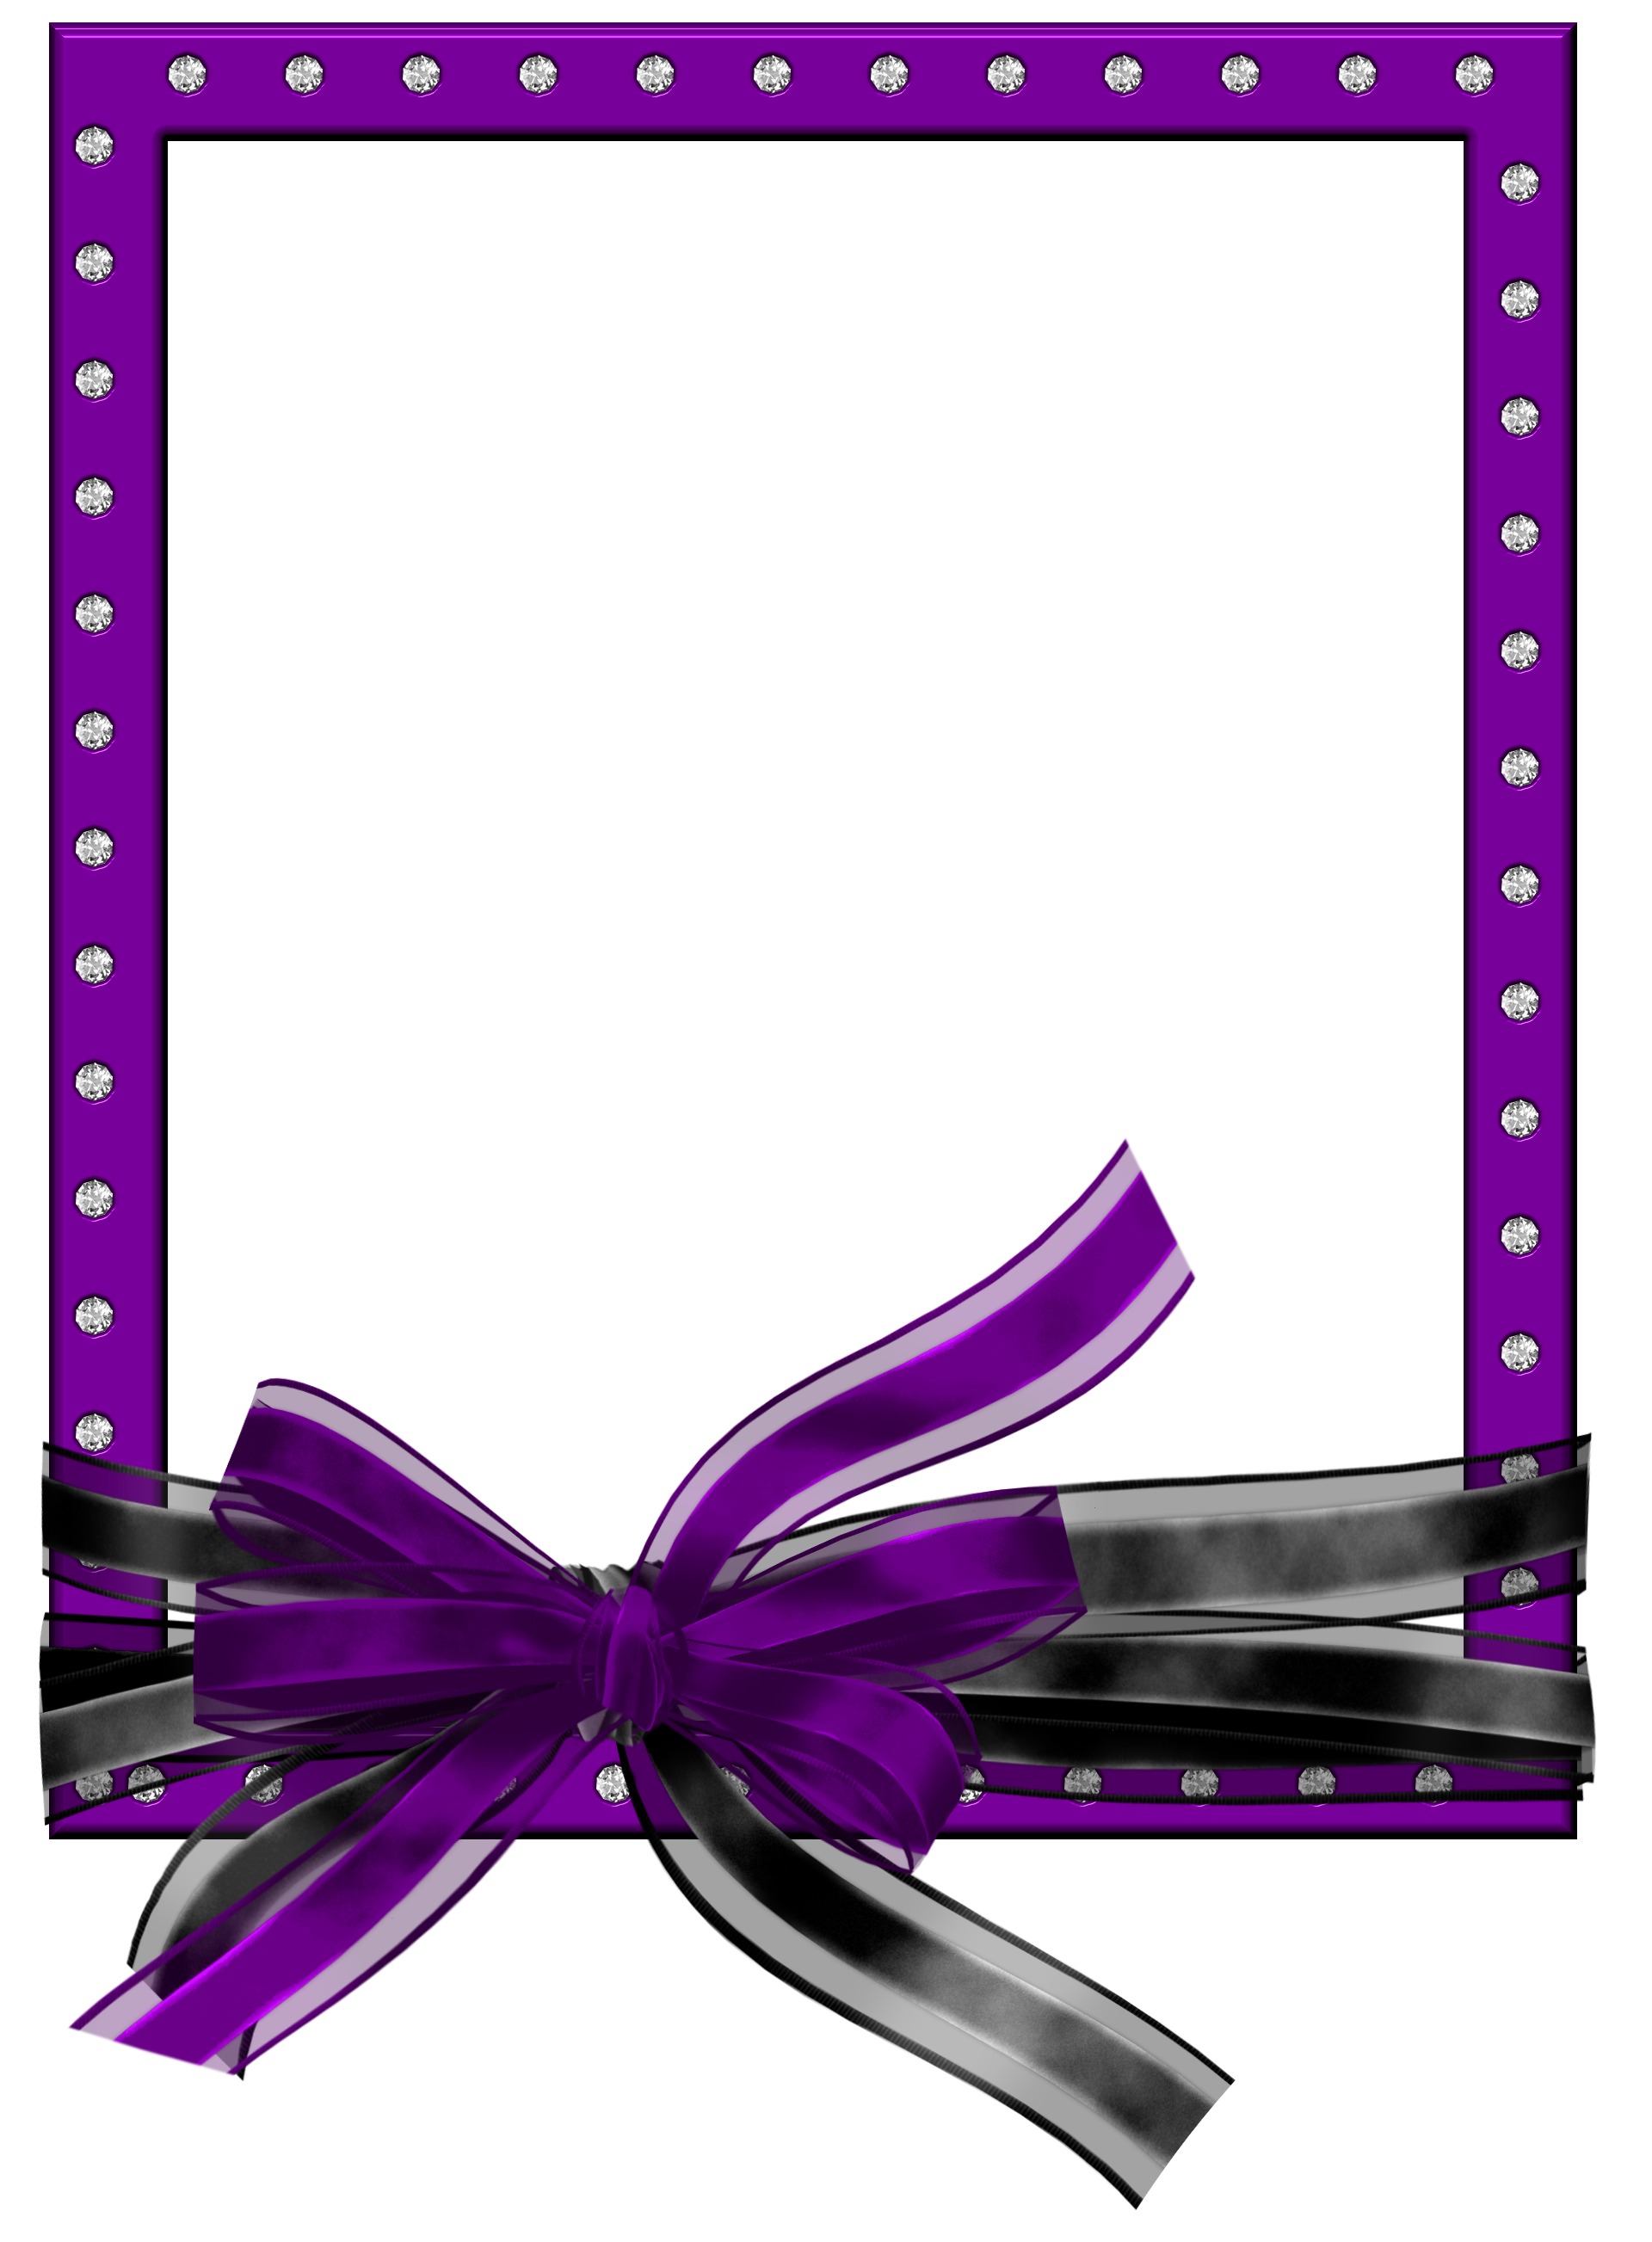 Purple Frame with Ribbon | Purple PNG Photo Frame with Black and ...